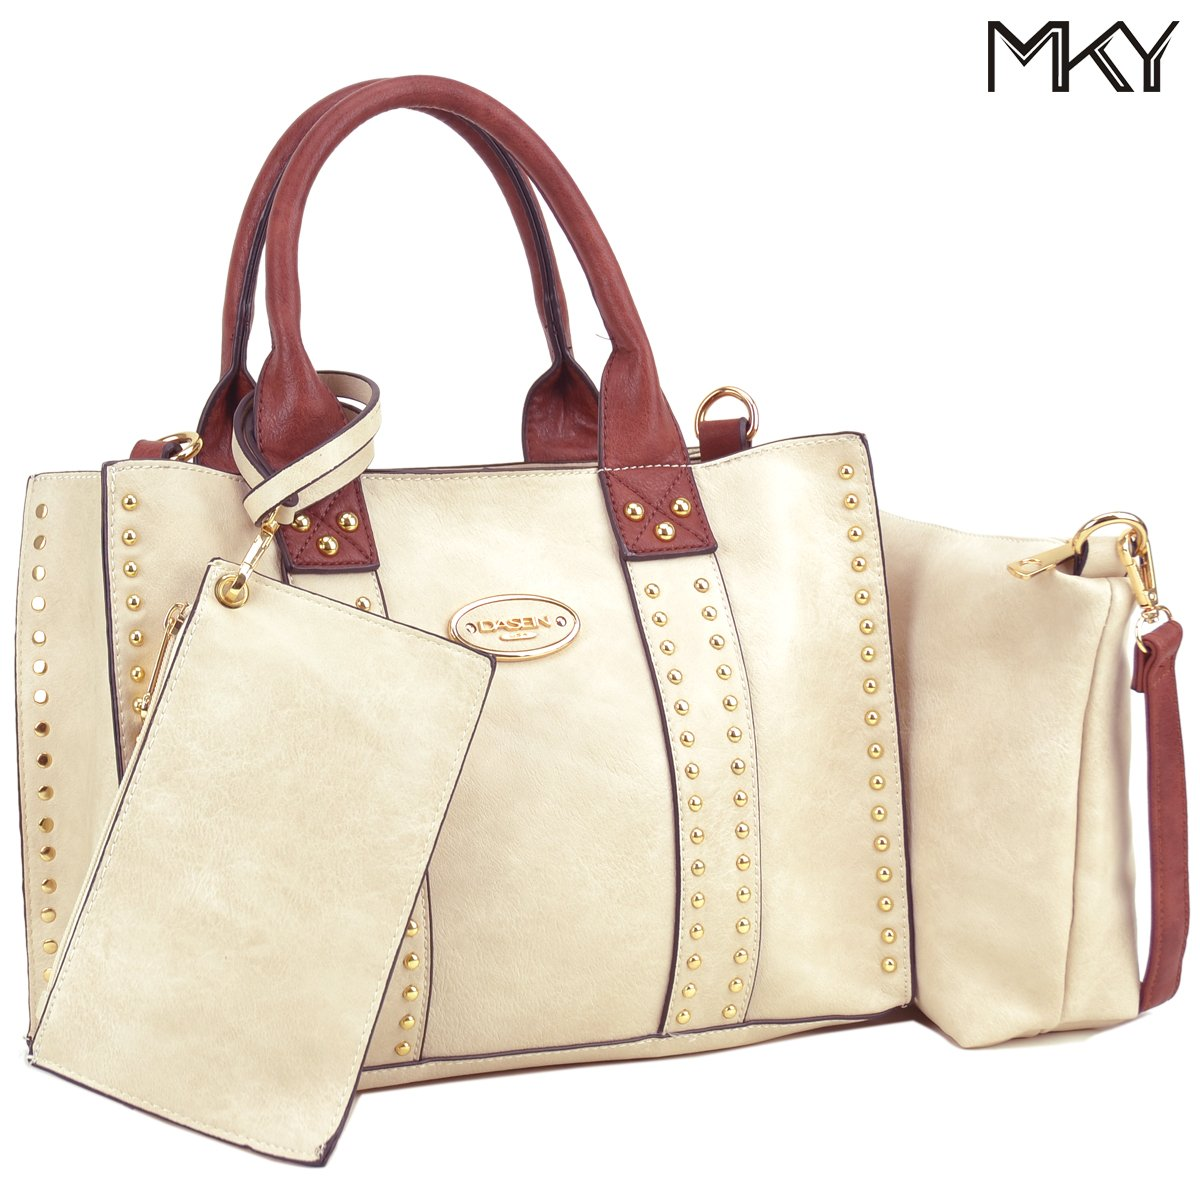 Women Handbag 3 Pieces Set Leather Shoulder Bag Satchel Purse 3 in 1 Simple Design Beige/Coffee